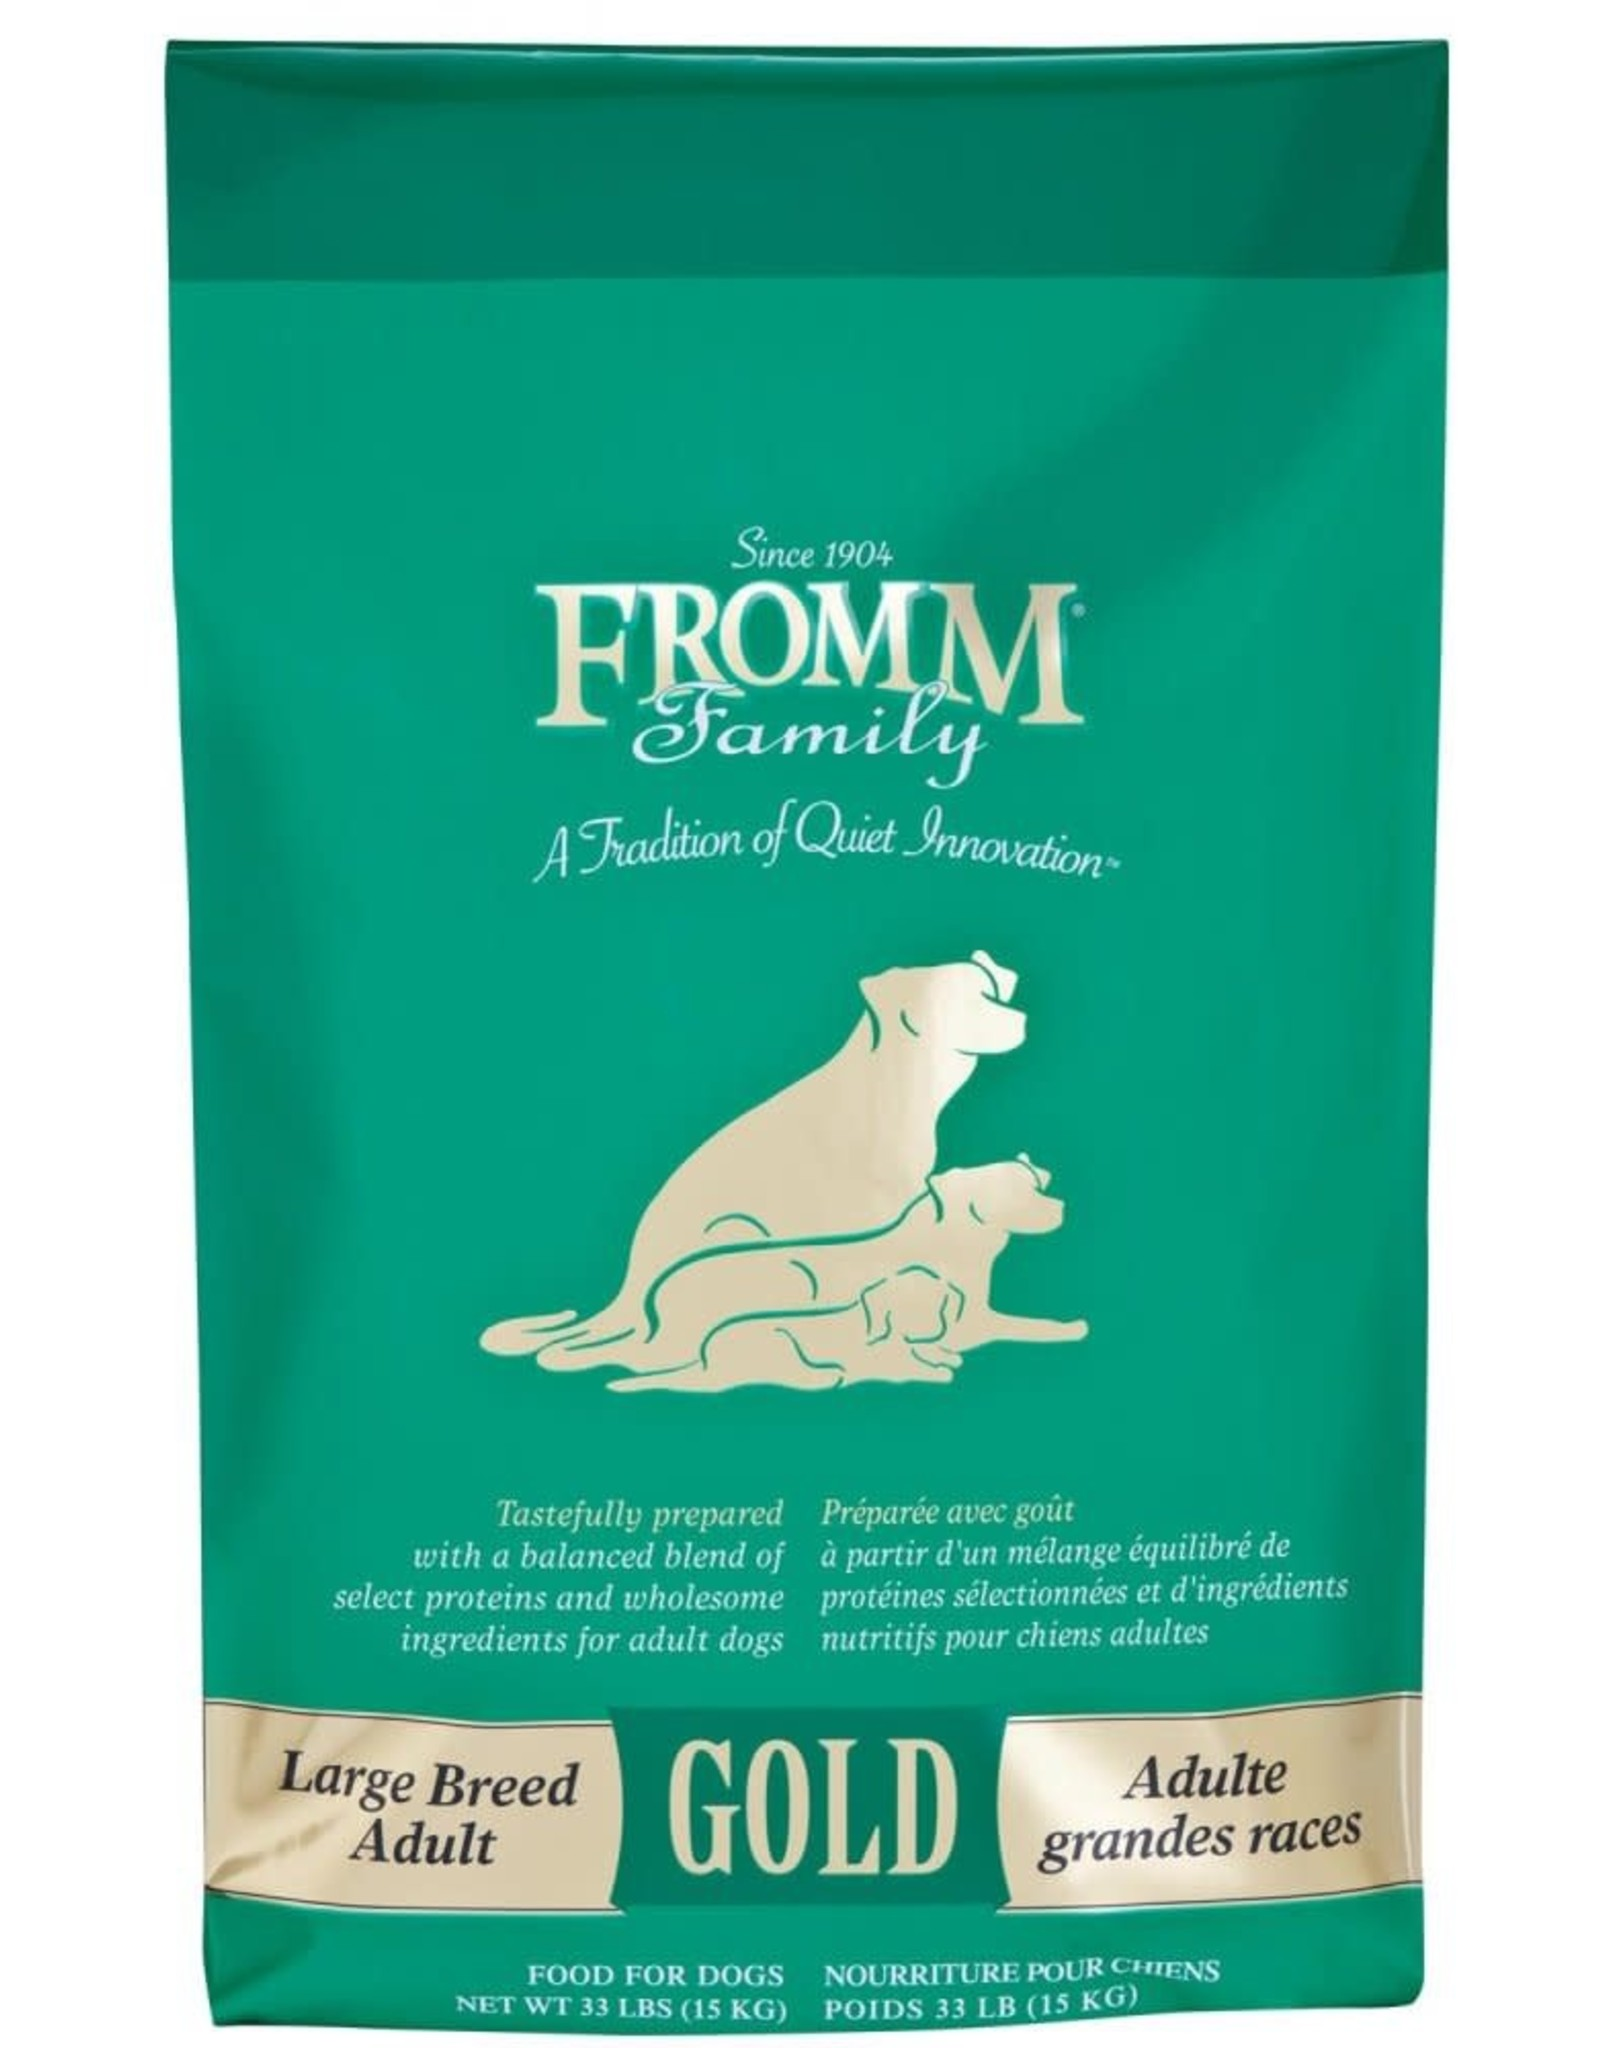 Fromm Fromm Family - Large Breed Adult Formula Gold Dry Dog Food